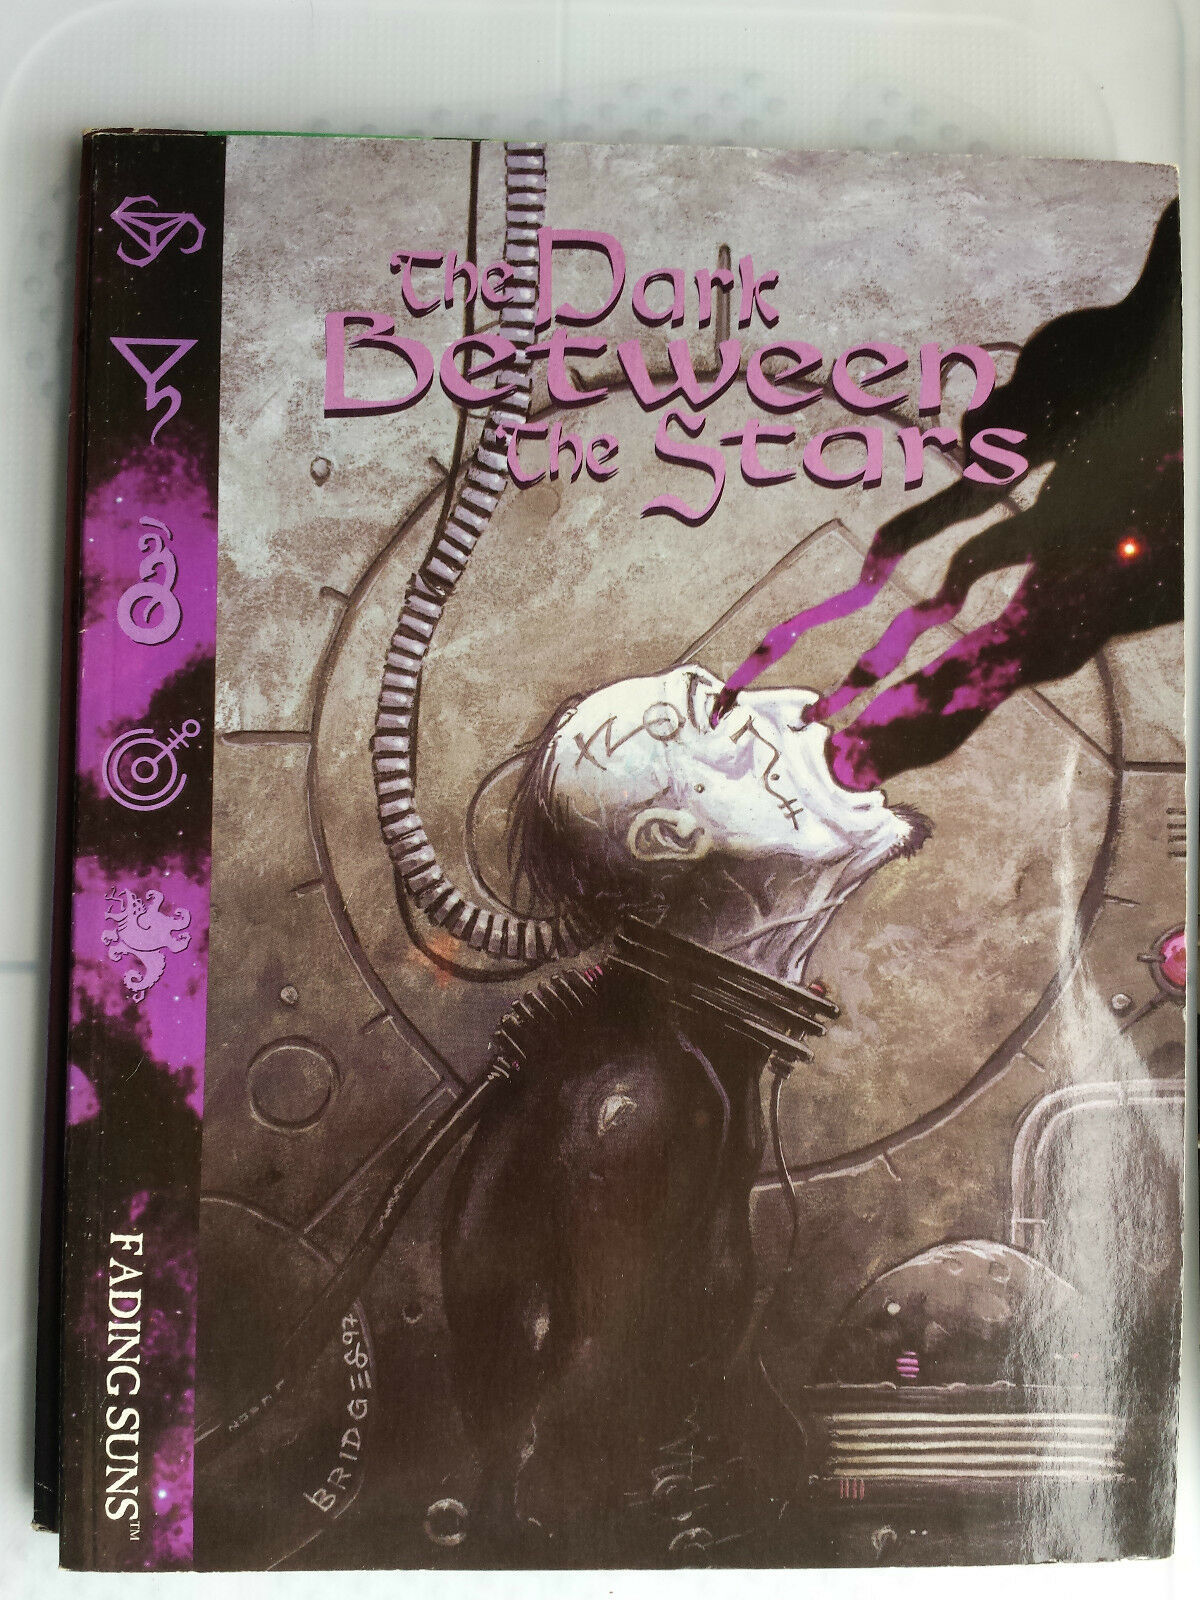 The Dark Between the Stars Fading suns sci-fi roleplaying RPG book